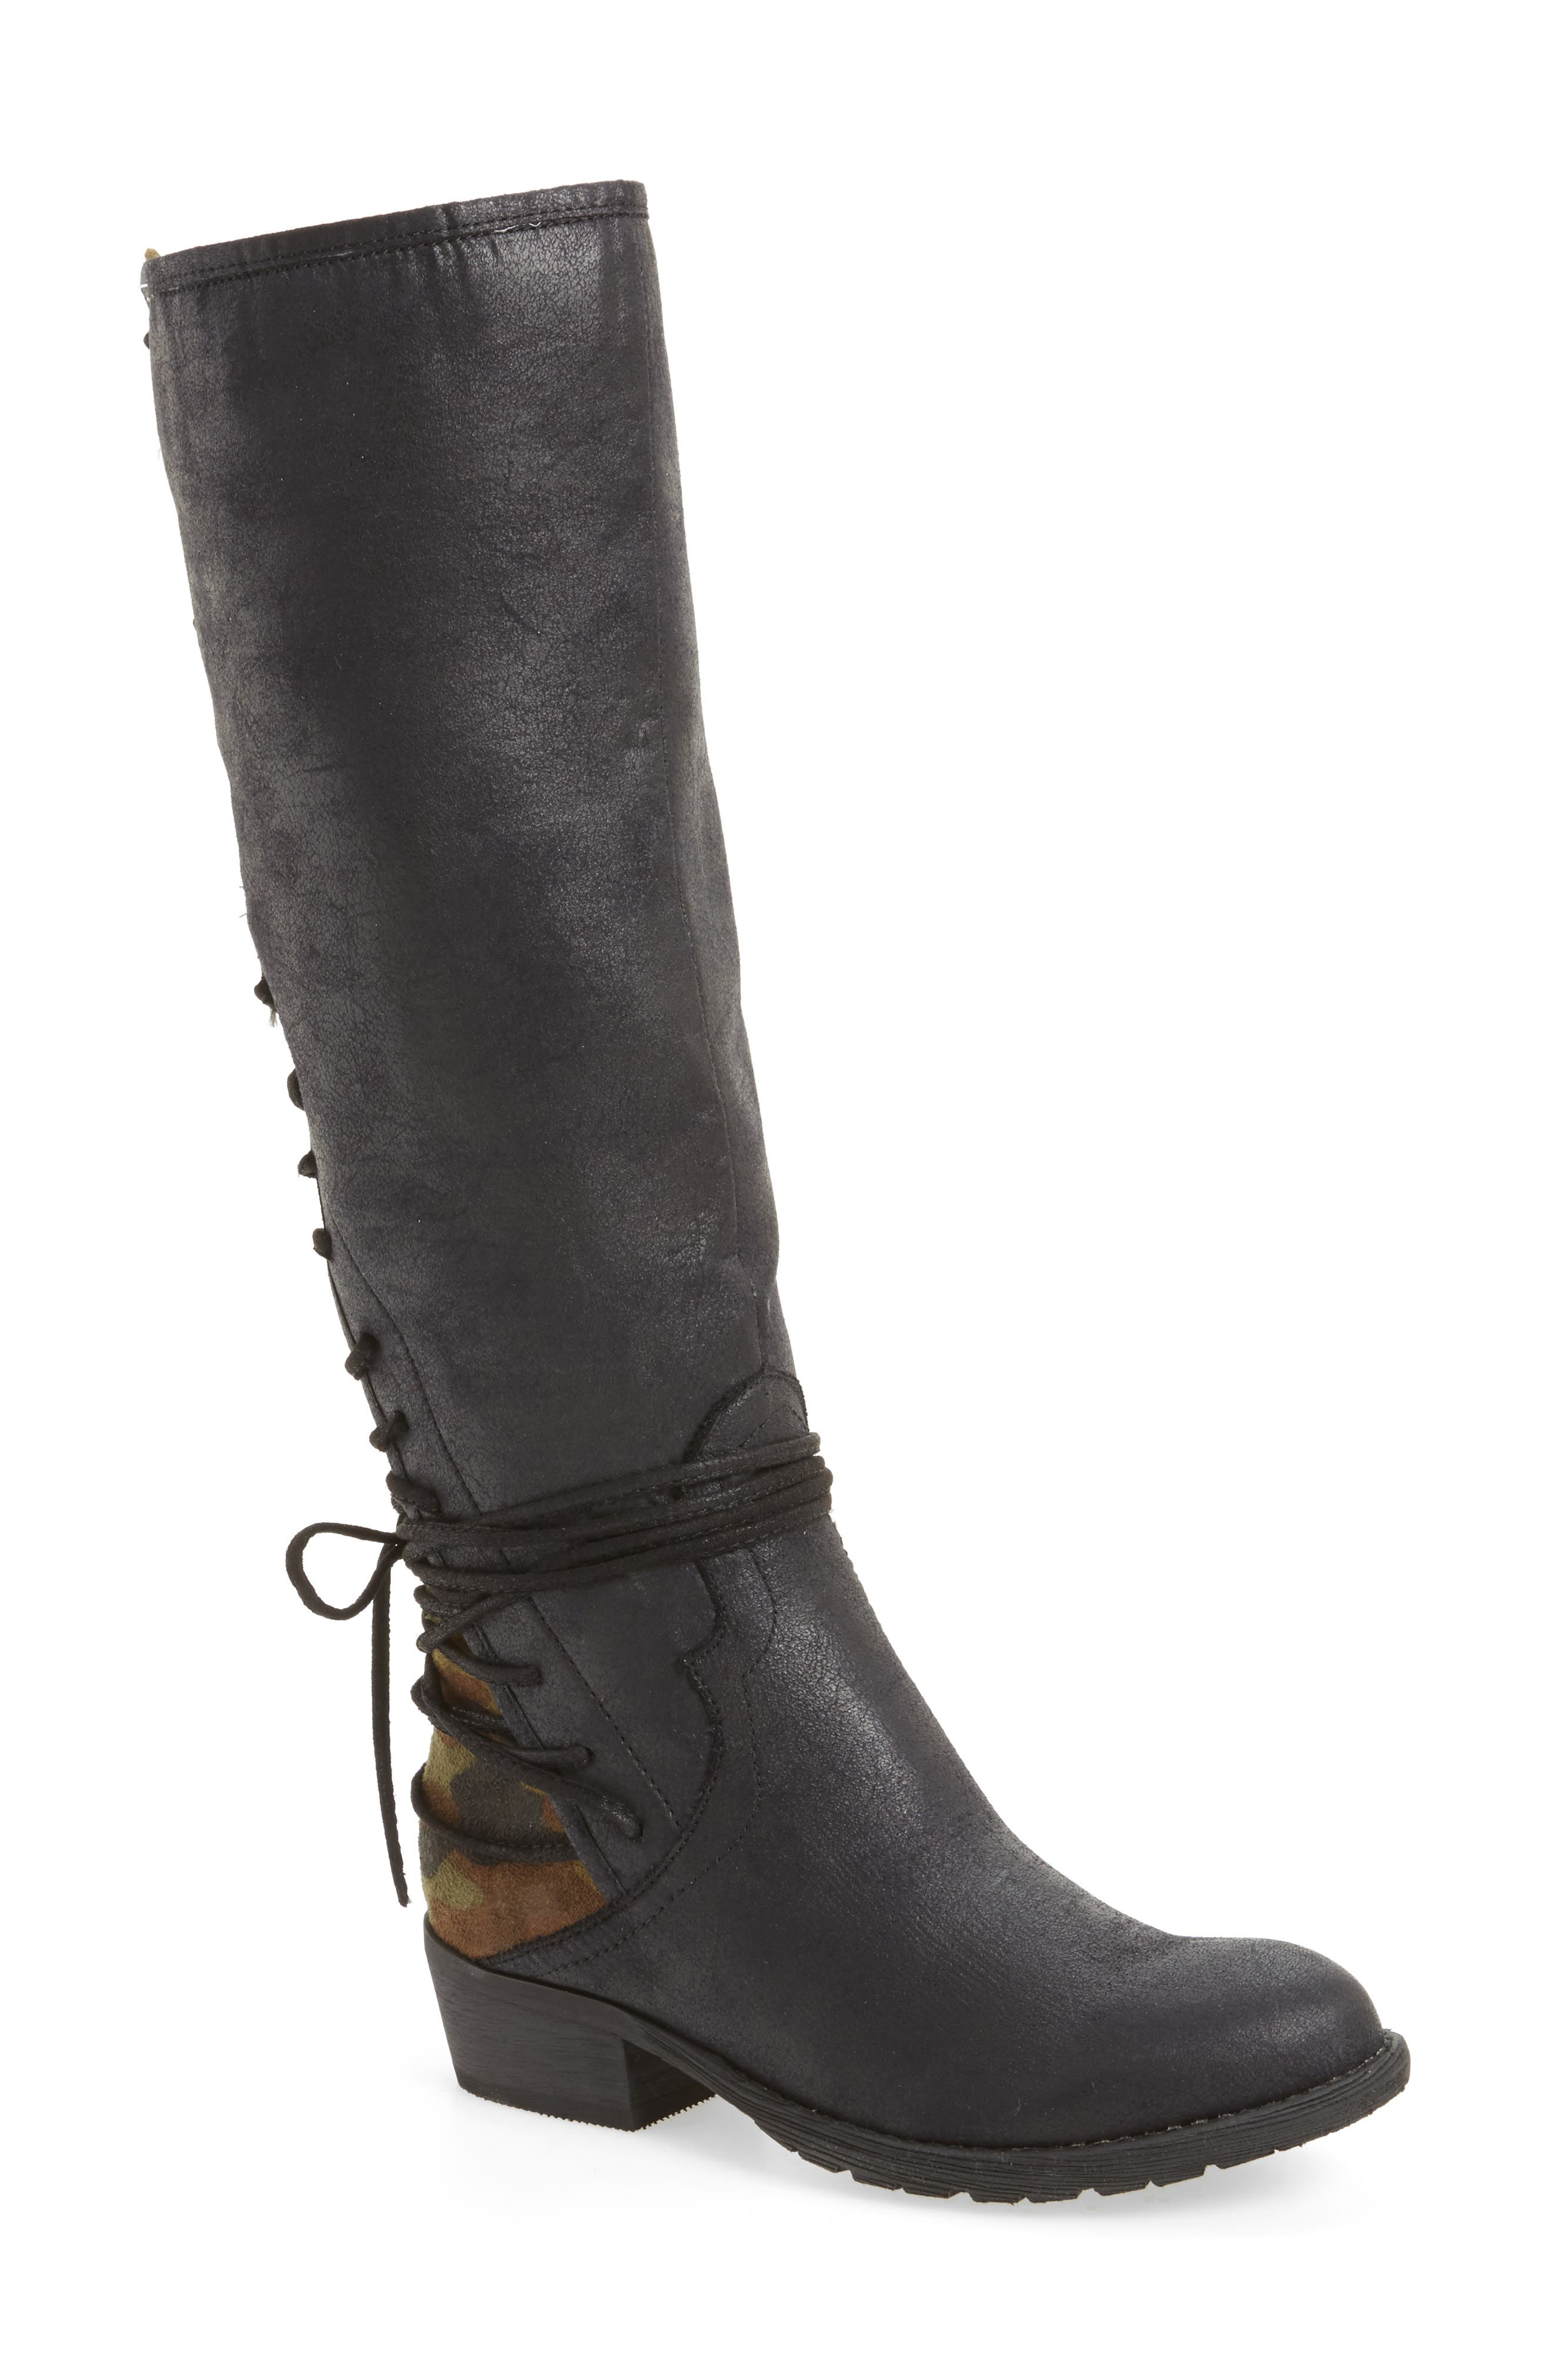 Alternate Image 1 Selected - Very Volatile Marcel Corseted Knee High Boot (Women)